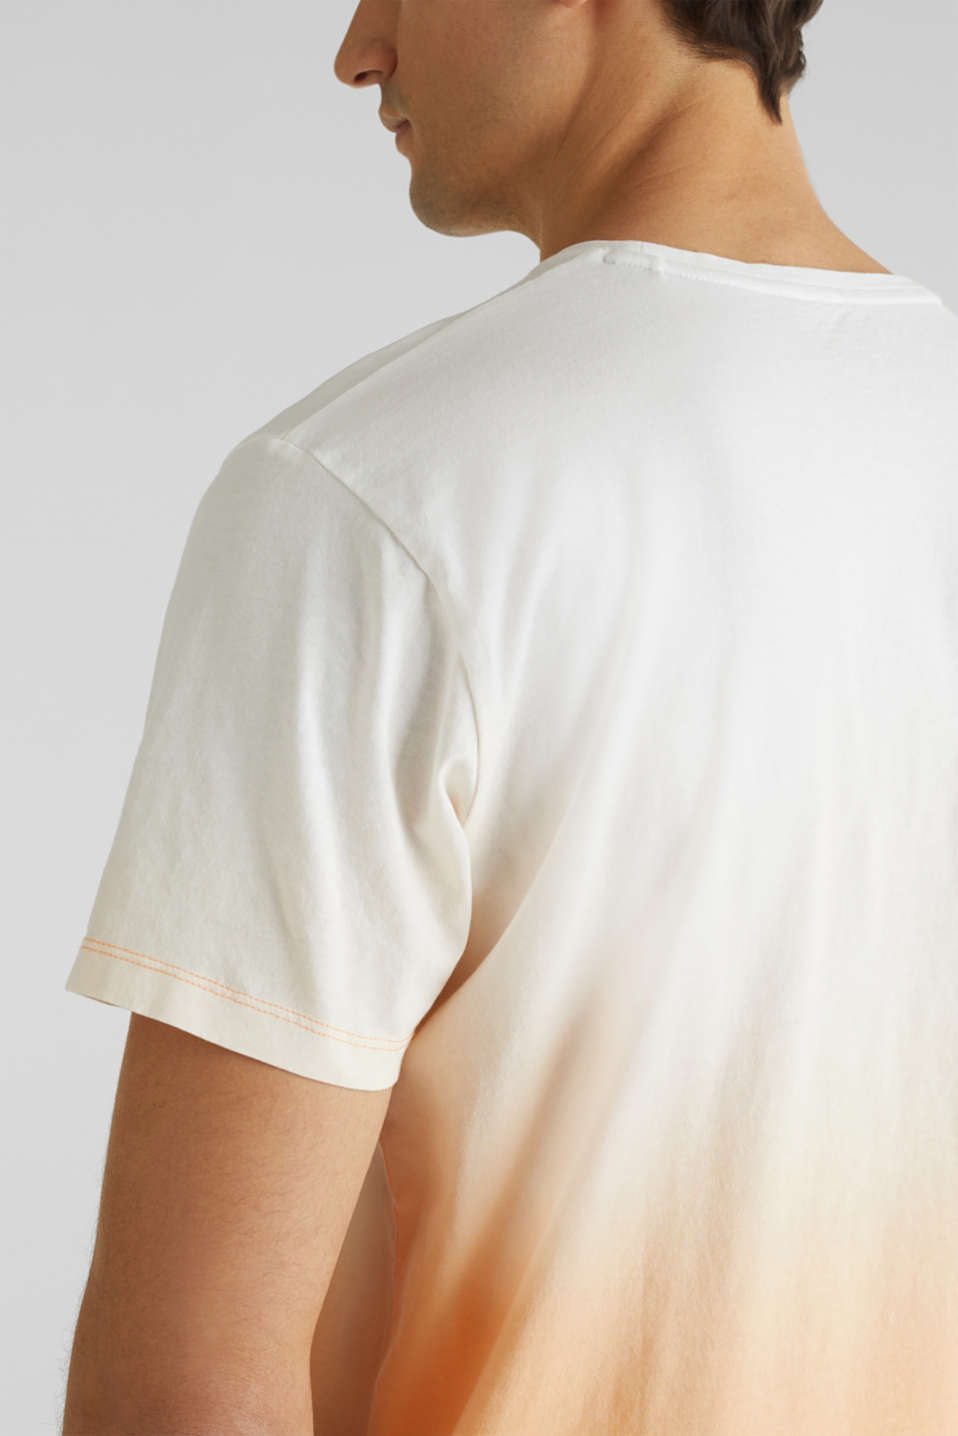 Jersey T-shirt with graduated colours, 100% cotton, PEACH 2, detail image number 5